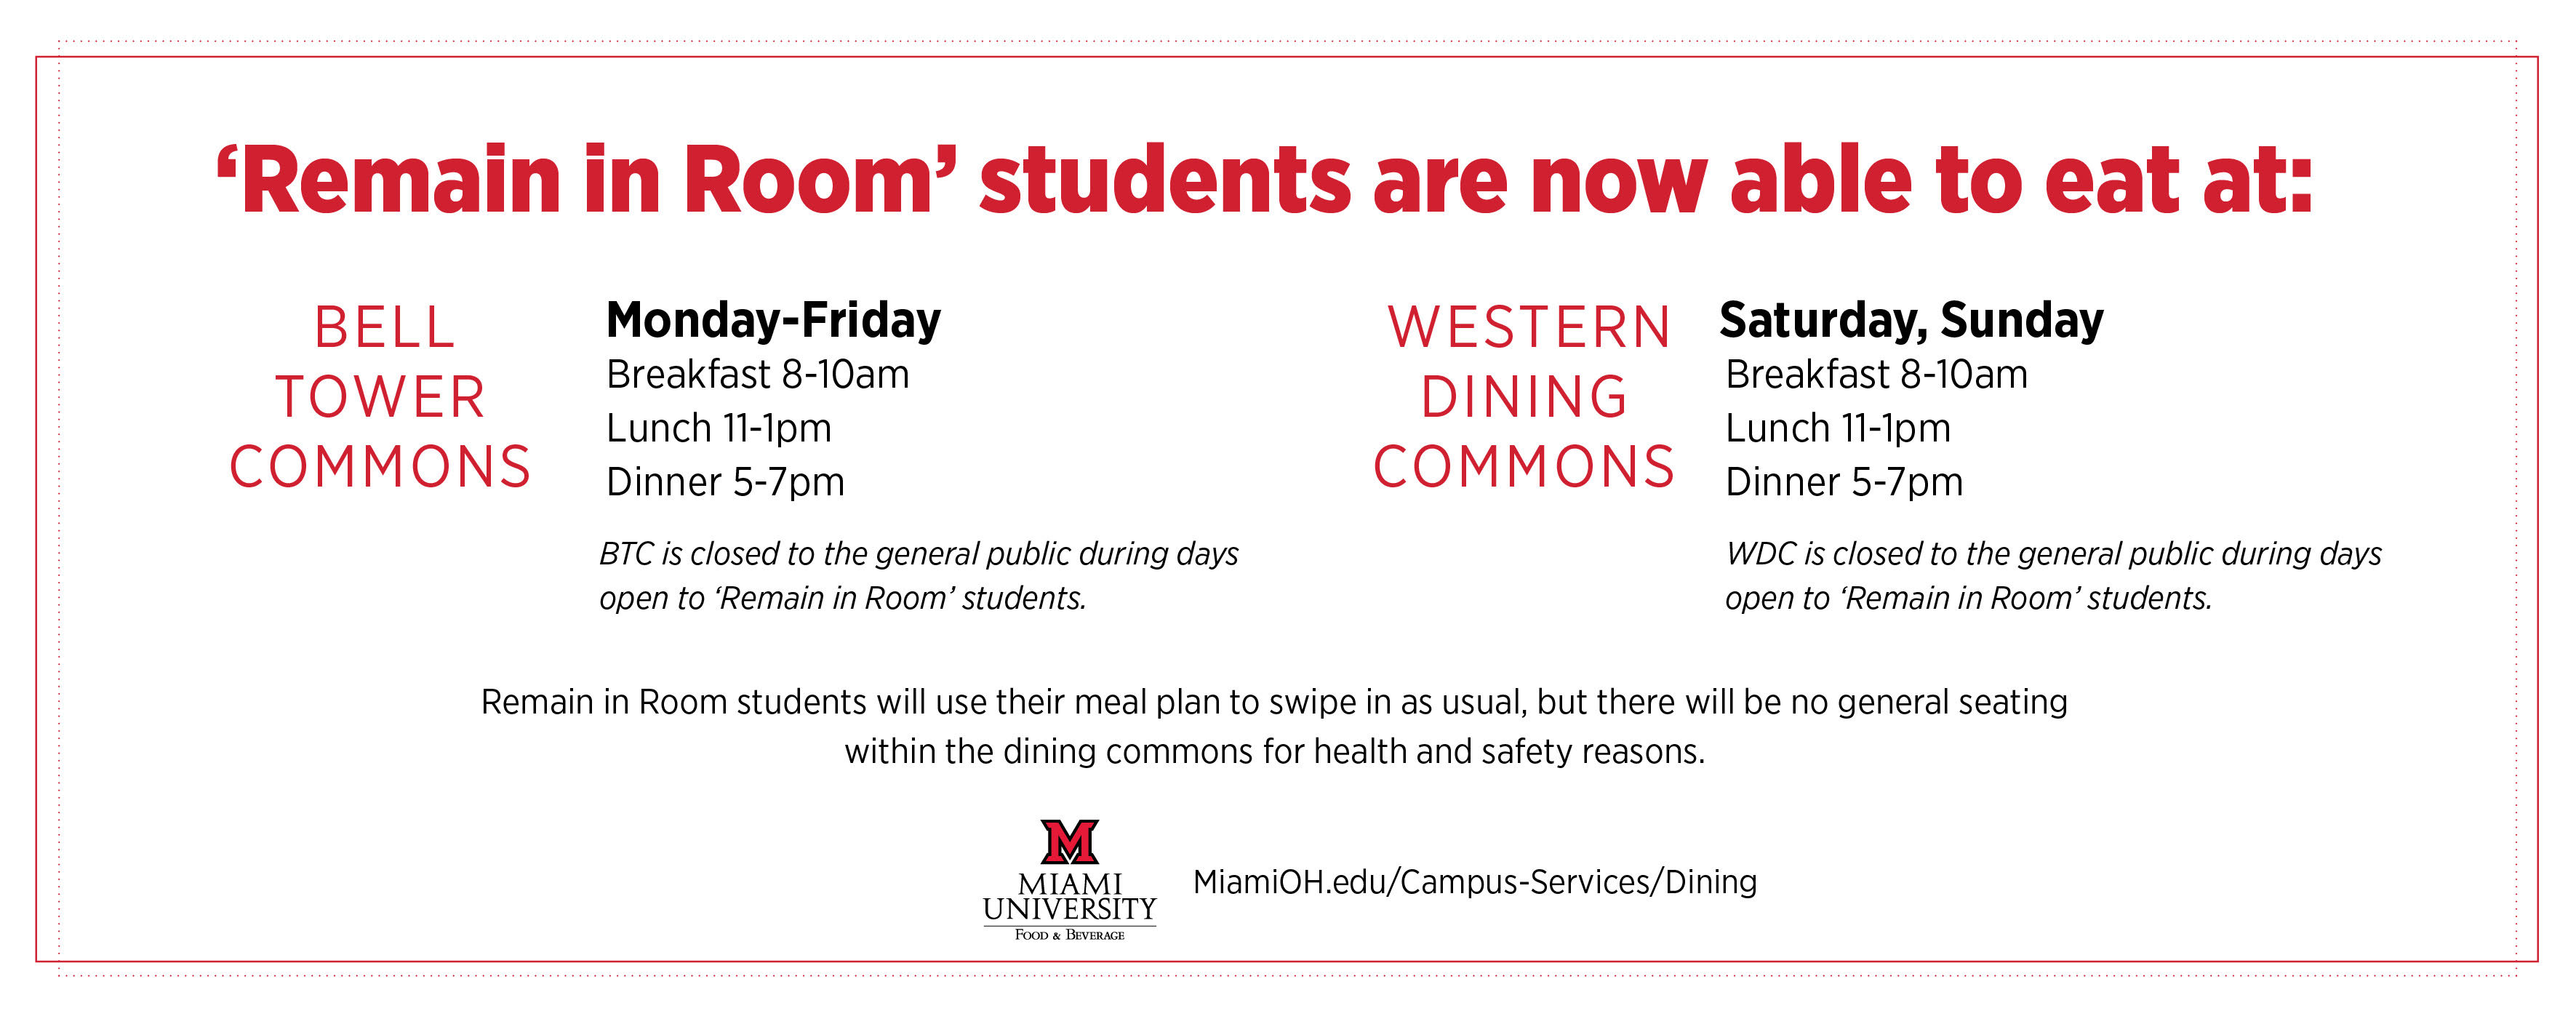 Remain in room students are now able to eat at Bell Tower Monday-Friday and Western Saturday-Sunday